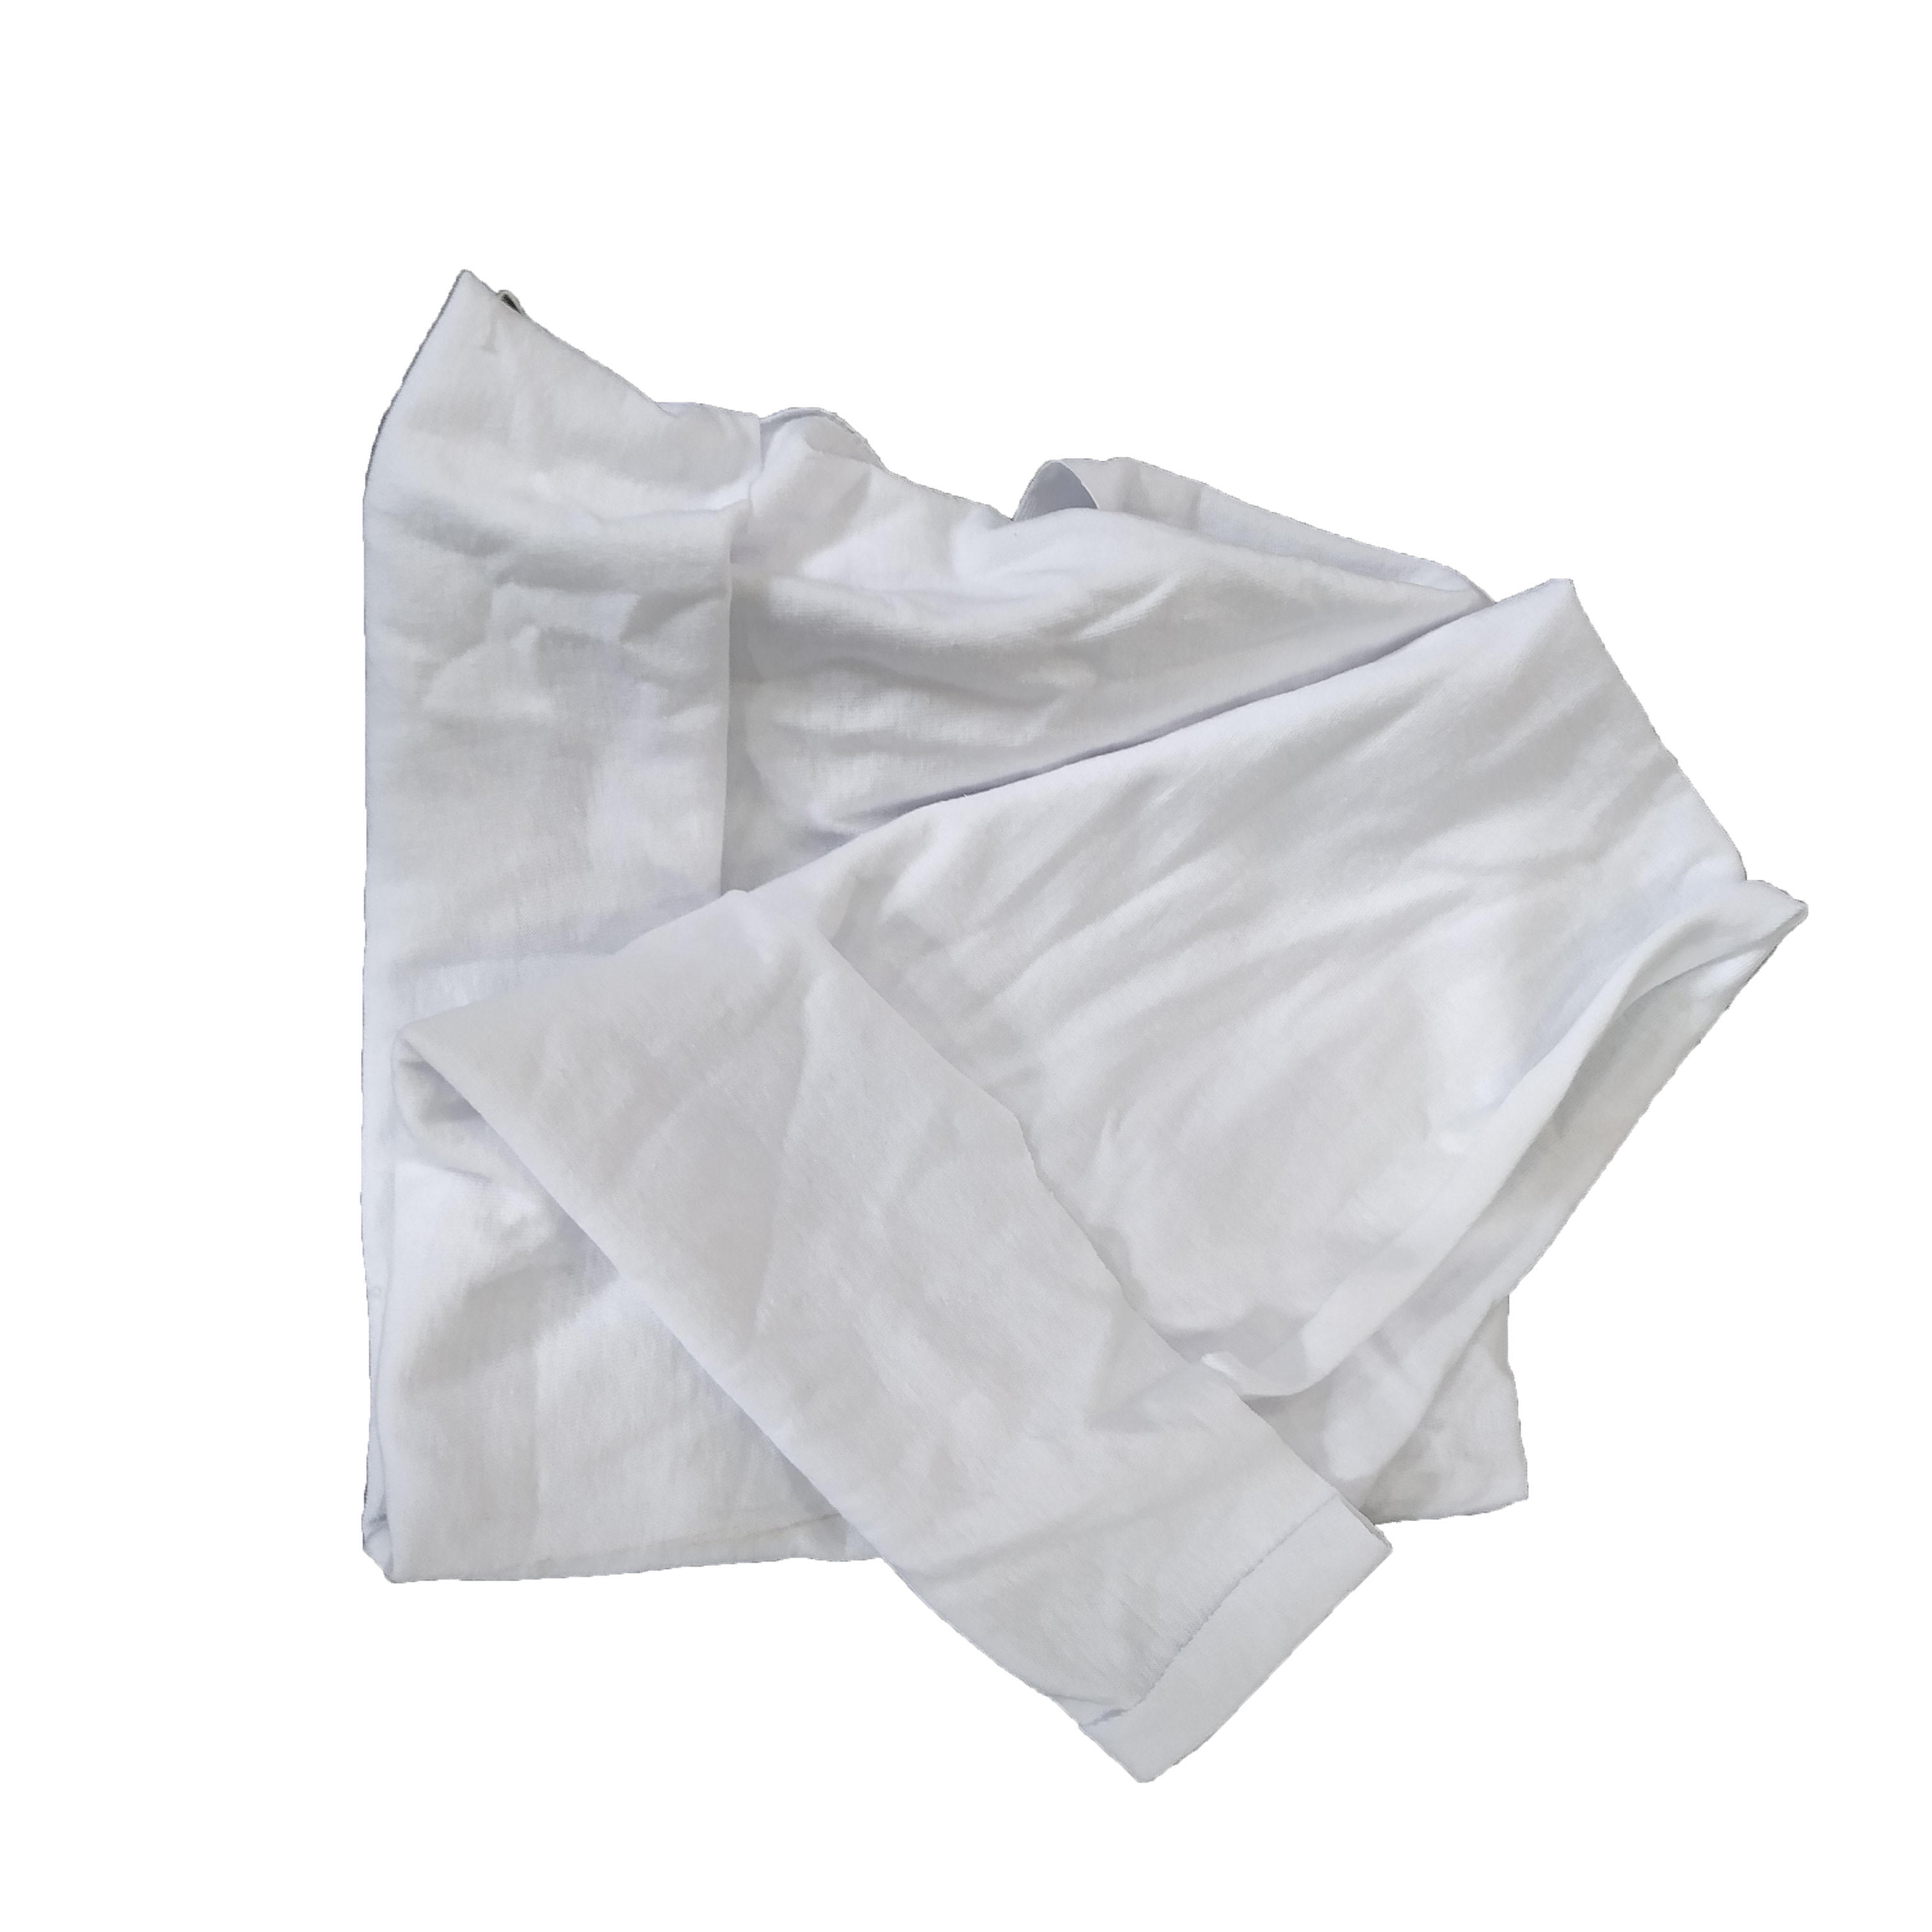 Wholesale cut new cotton milky white rags and wipers